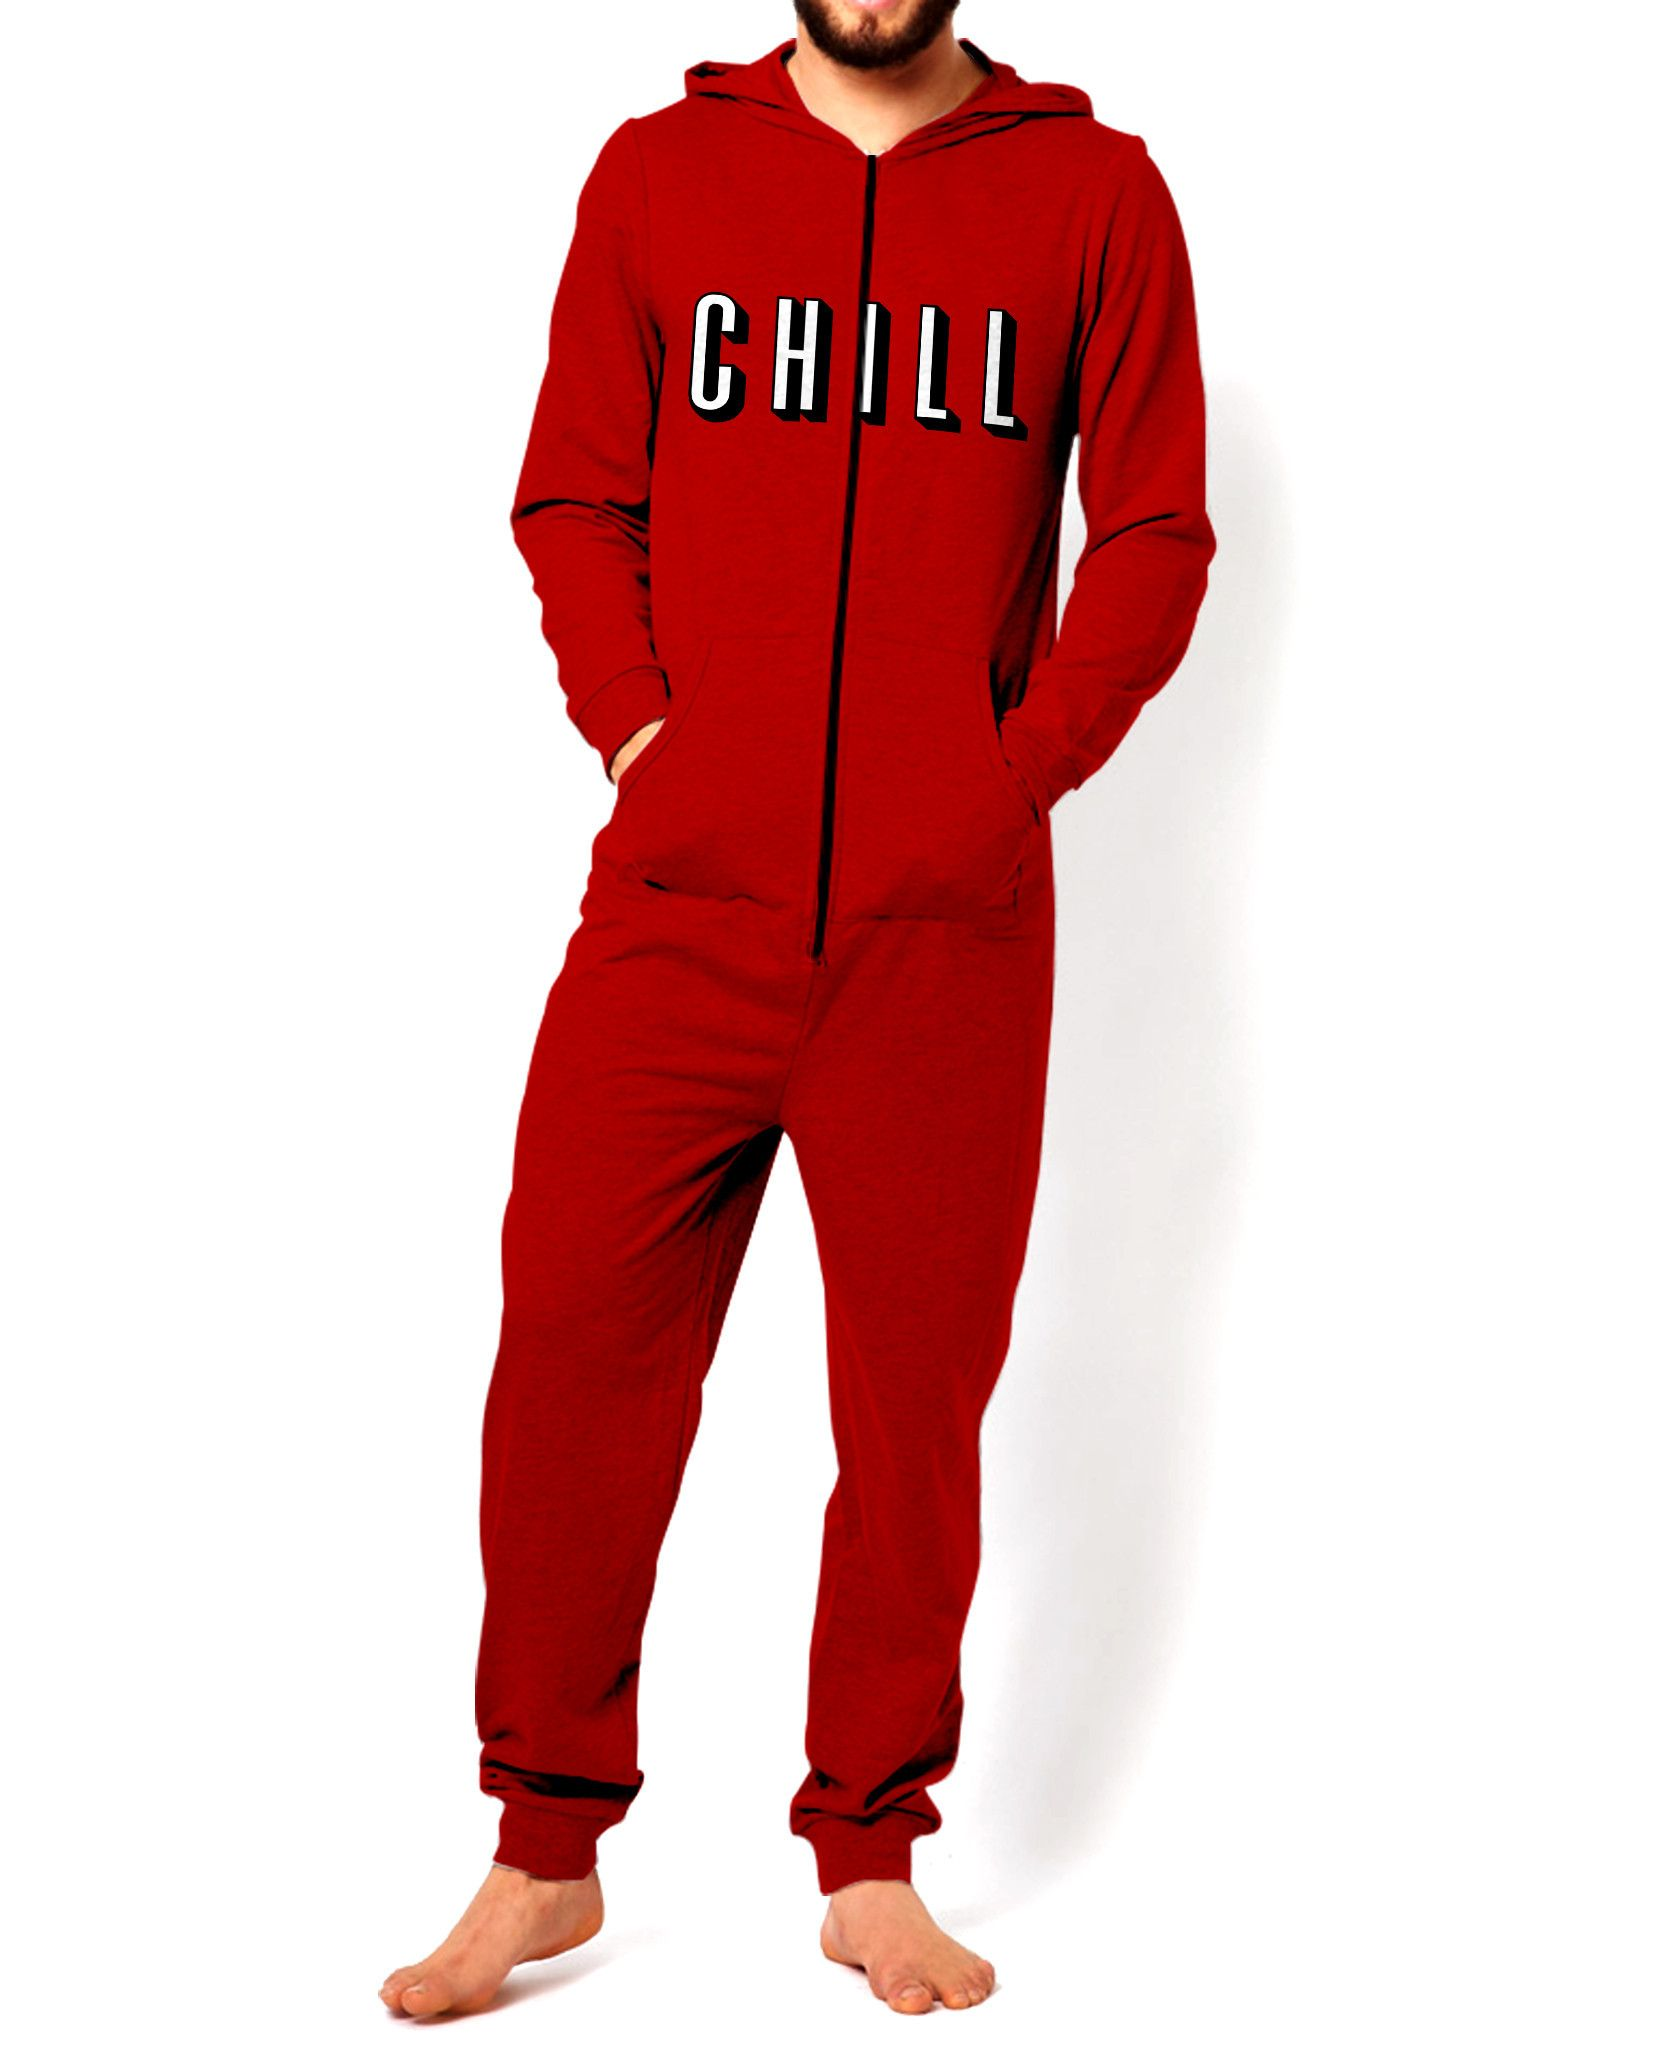 Take your Netflix and chill game to the next level with